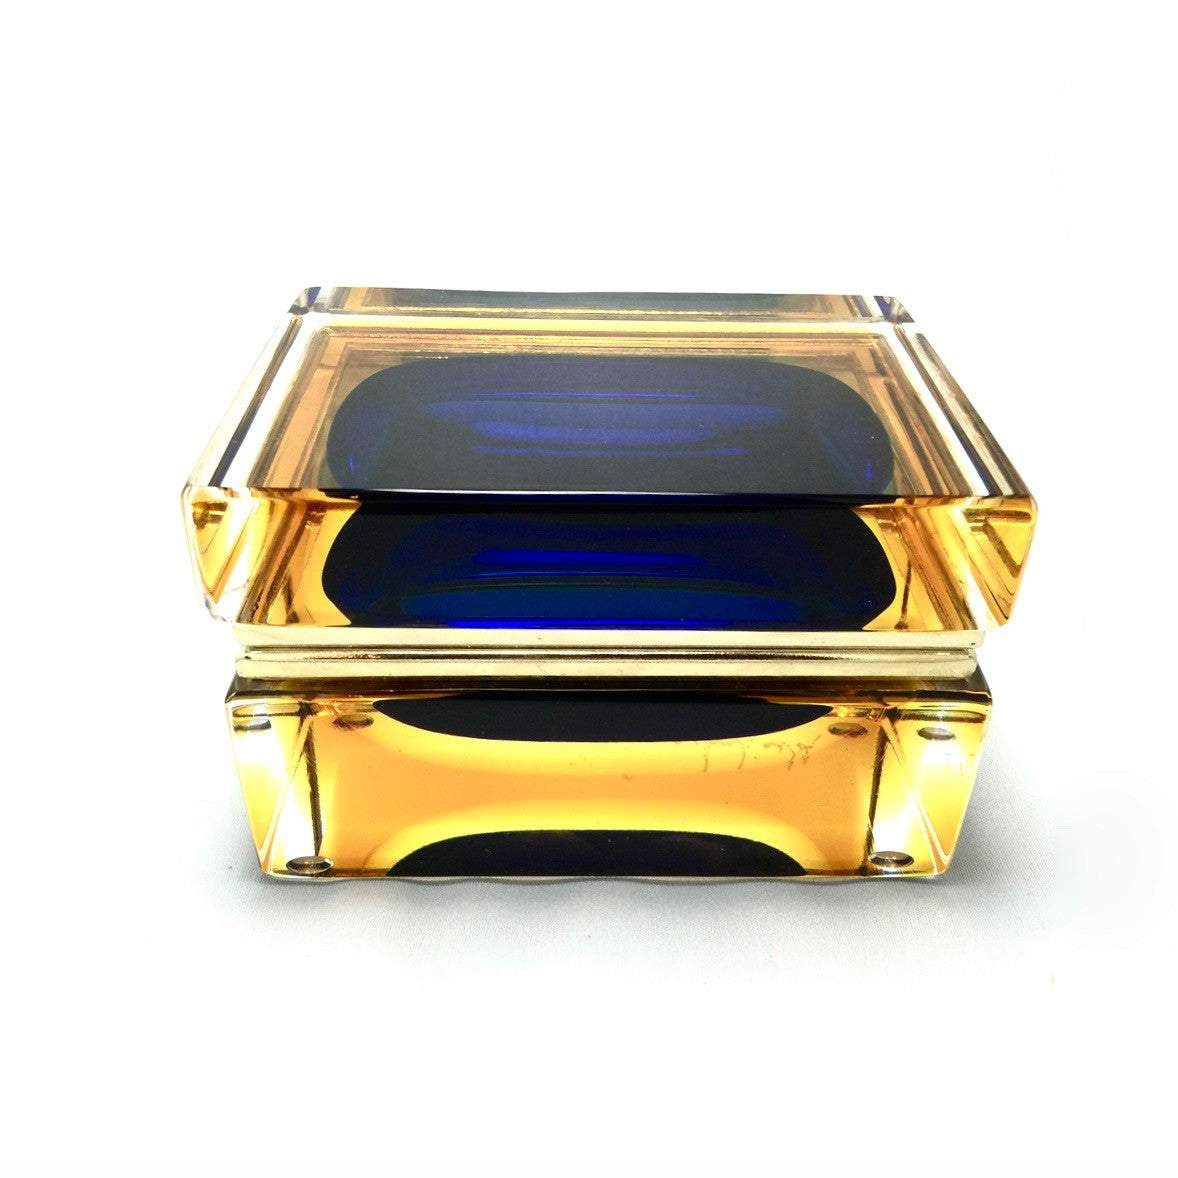 Alessandro Mandruzzato Rectangular Murano Glass Box in Amber and Cobalt, Alessandro Mandruzzato, Putti Fine Furnishings